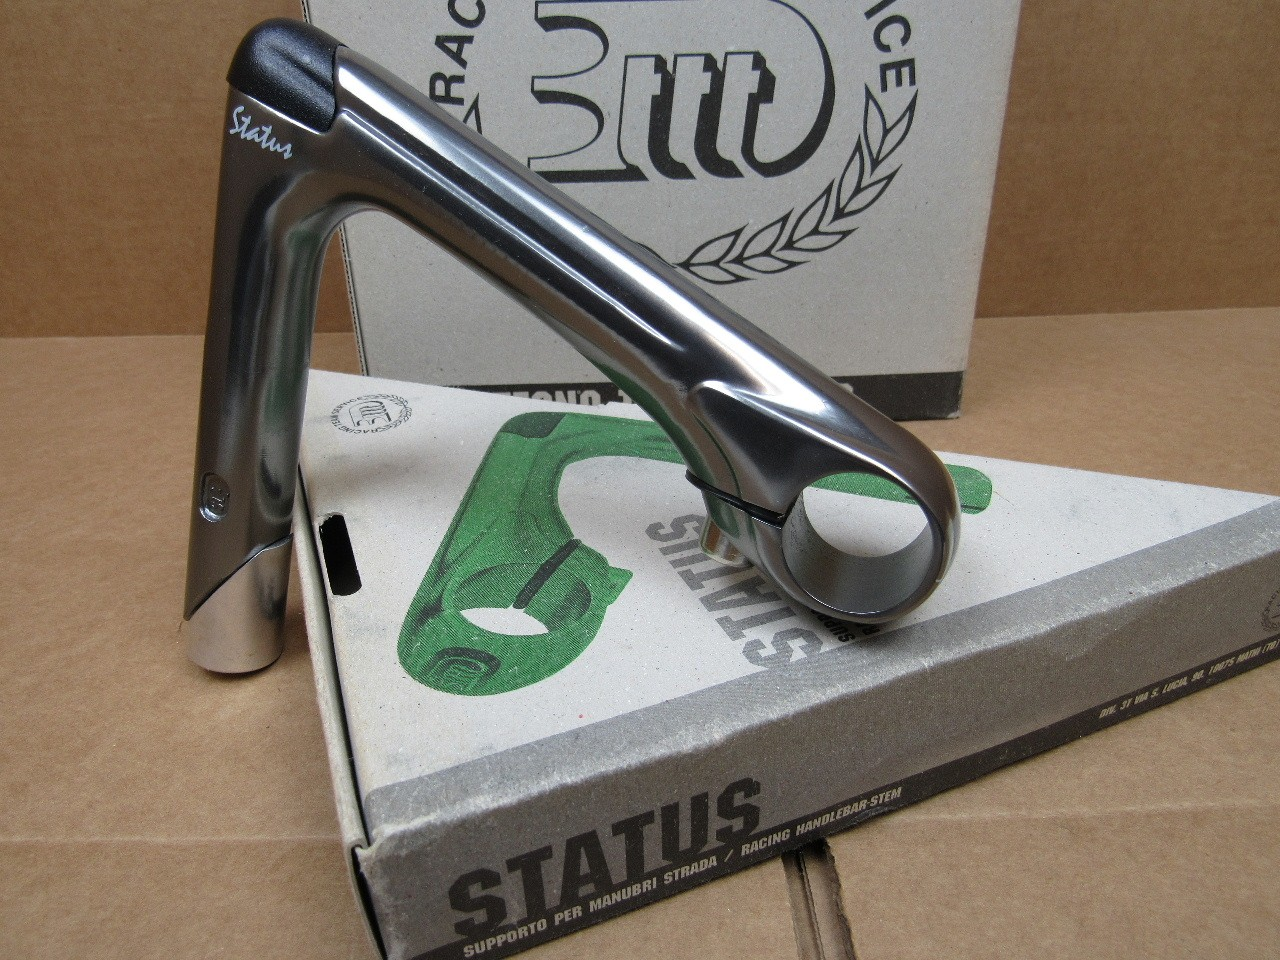 NOS 3T Status Quill Stem w//Gray Finish ...Blemishes 25.8//26.0 mm clamp x 140 mm